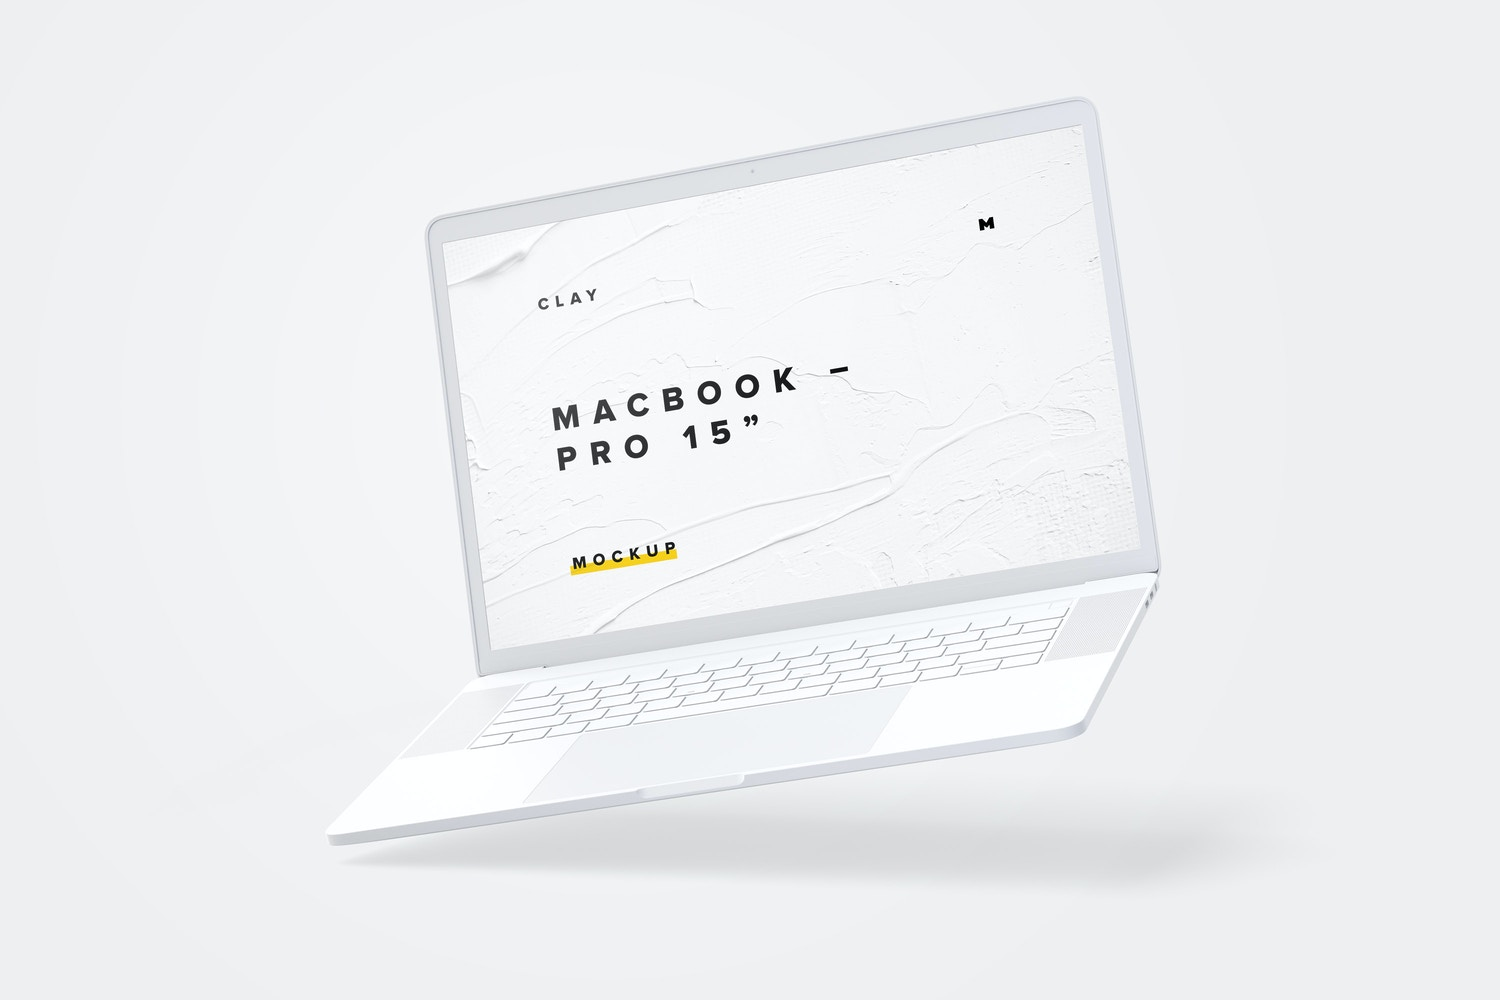 """Clay MacBook Pro 15"""" with Touch Bar Mockup"""